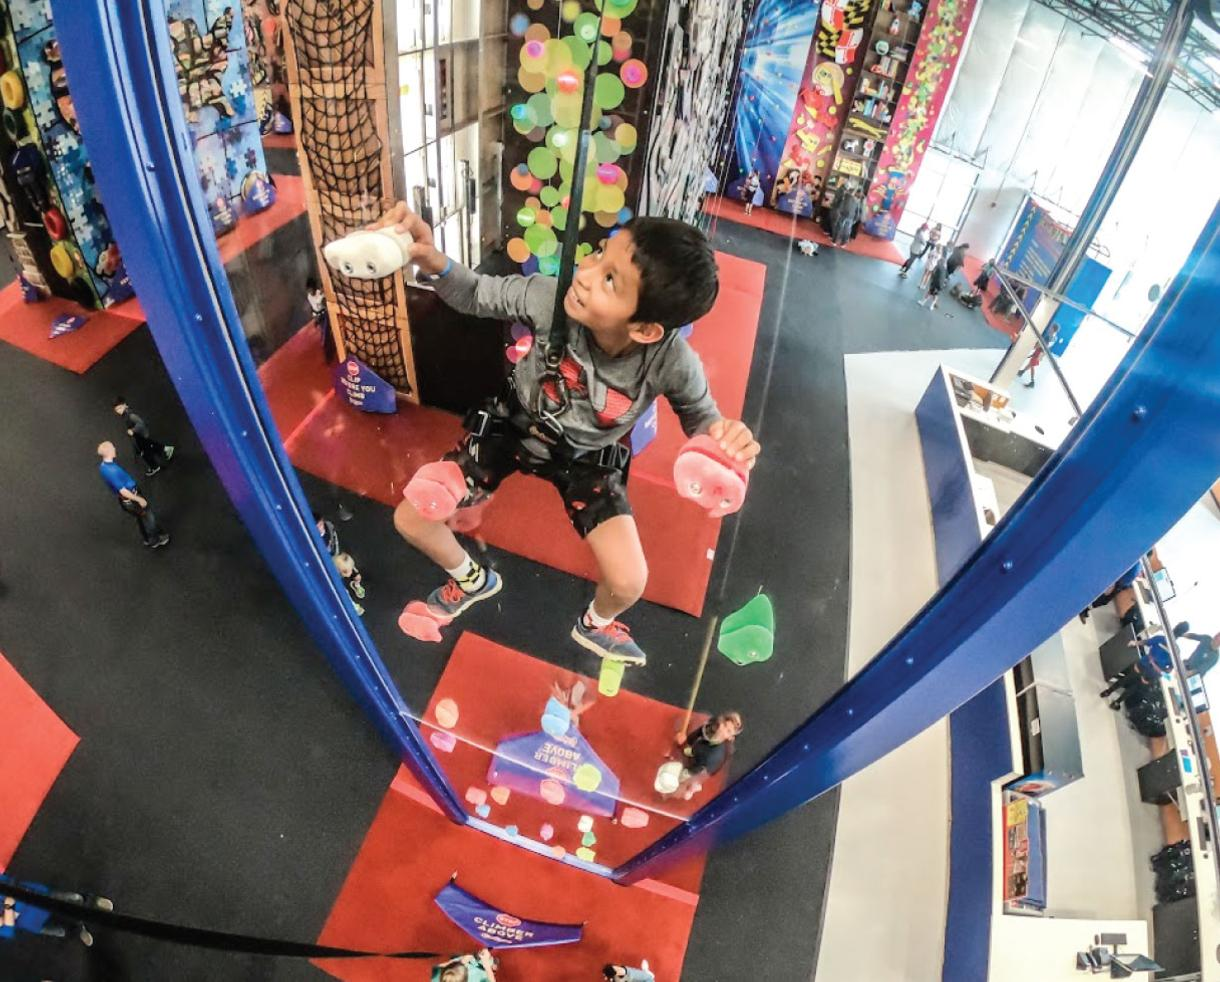 3 Hours of Indoor Rock Climbing for Ages 2-5 at the BRAND NEW ClimbZone in White Marsh